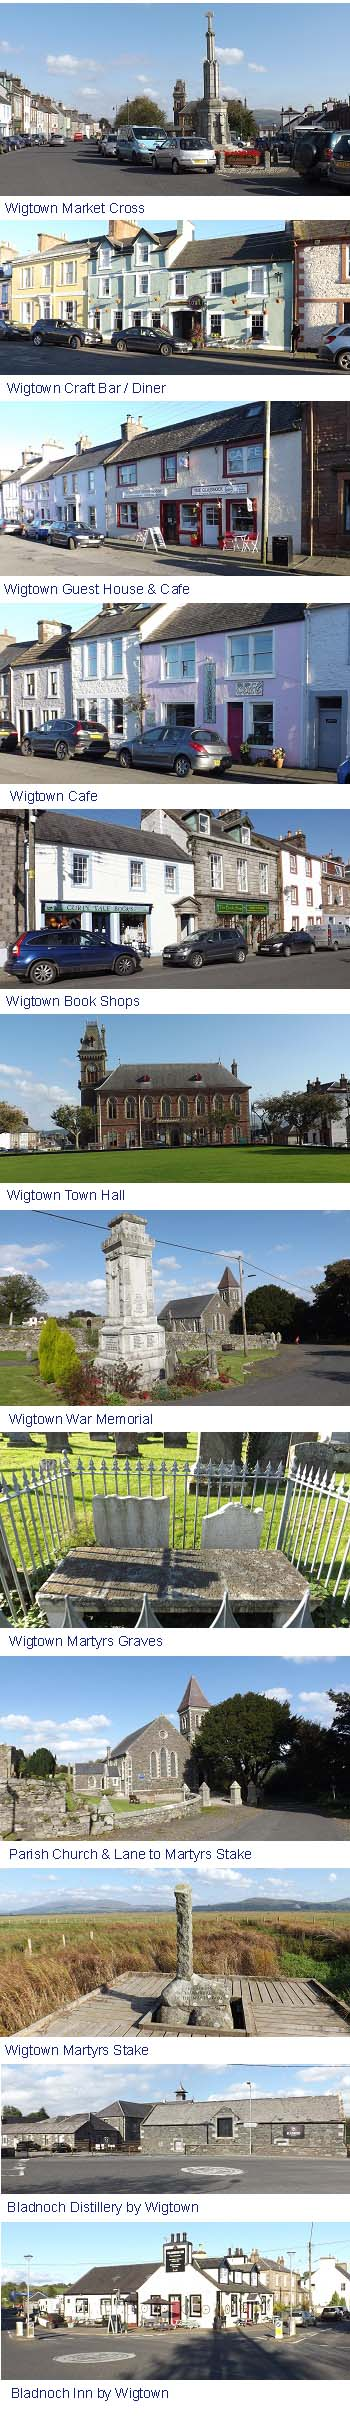 Wigtown Images